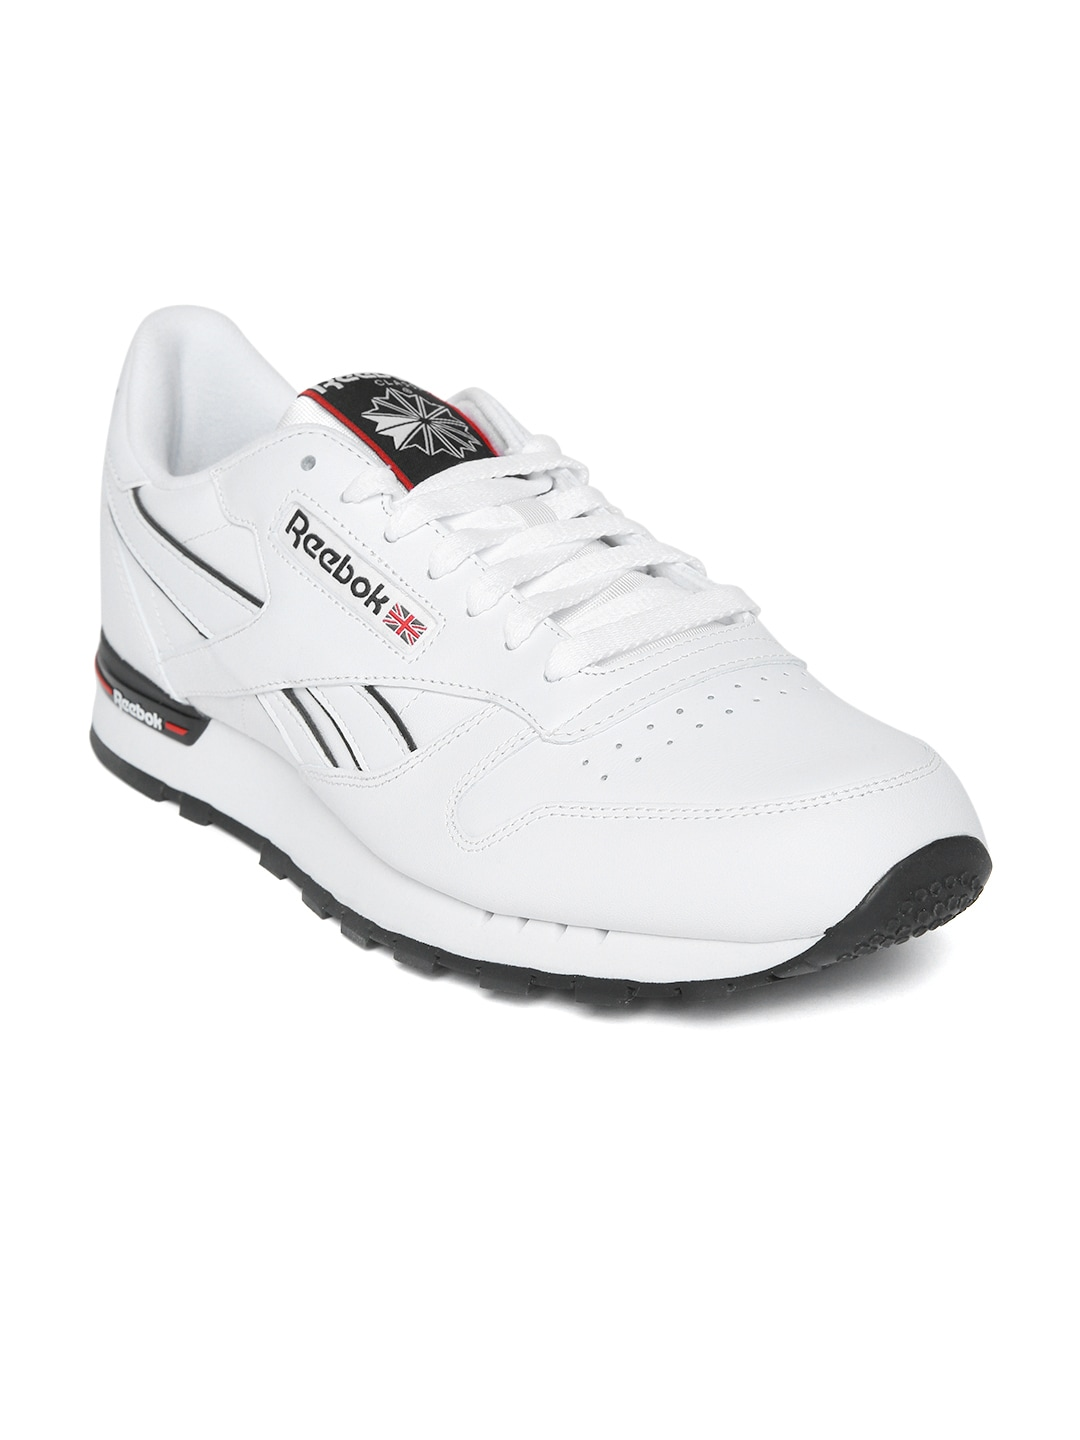 39950b5215fd Reebok White Shoes - Buy Reebok White Shoes online in India